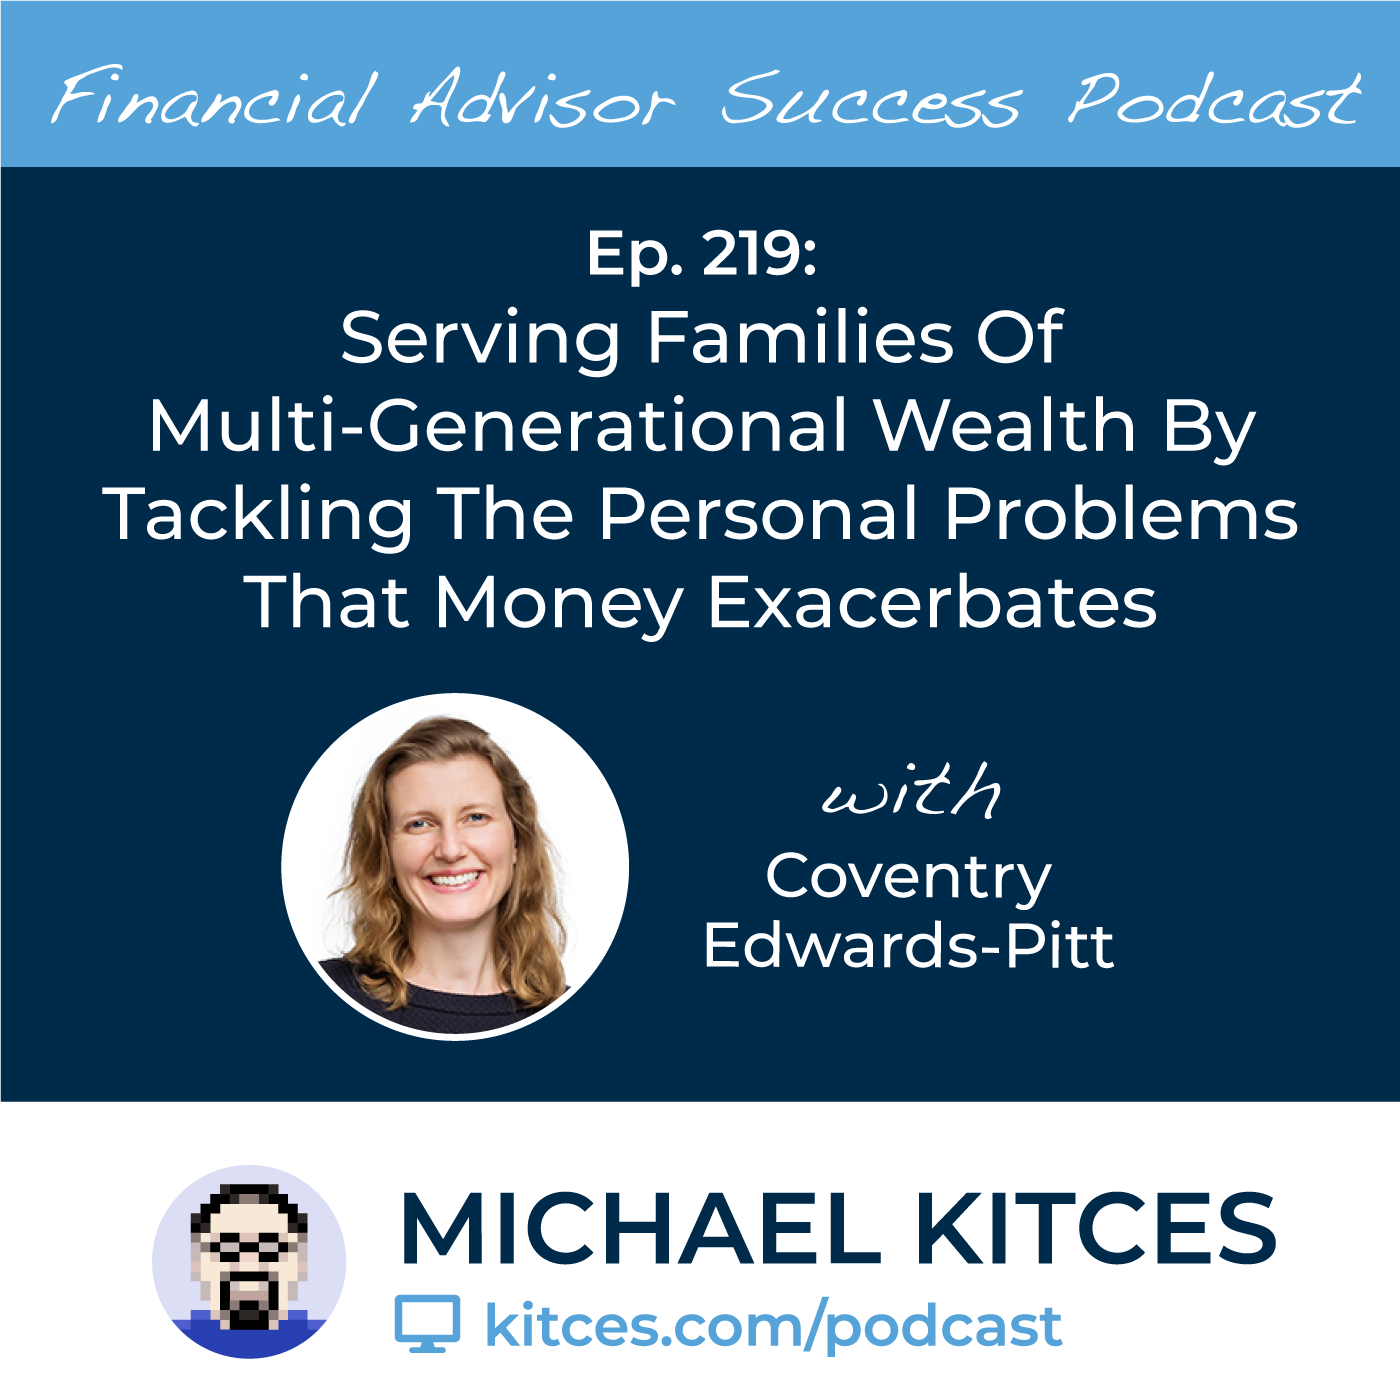 Ep 219: Serving Families Of Multi-Generational Wealth By Tackling The Personal Problems That Money Exacerbates with Coventry Edwards-Pitt